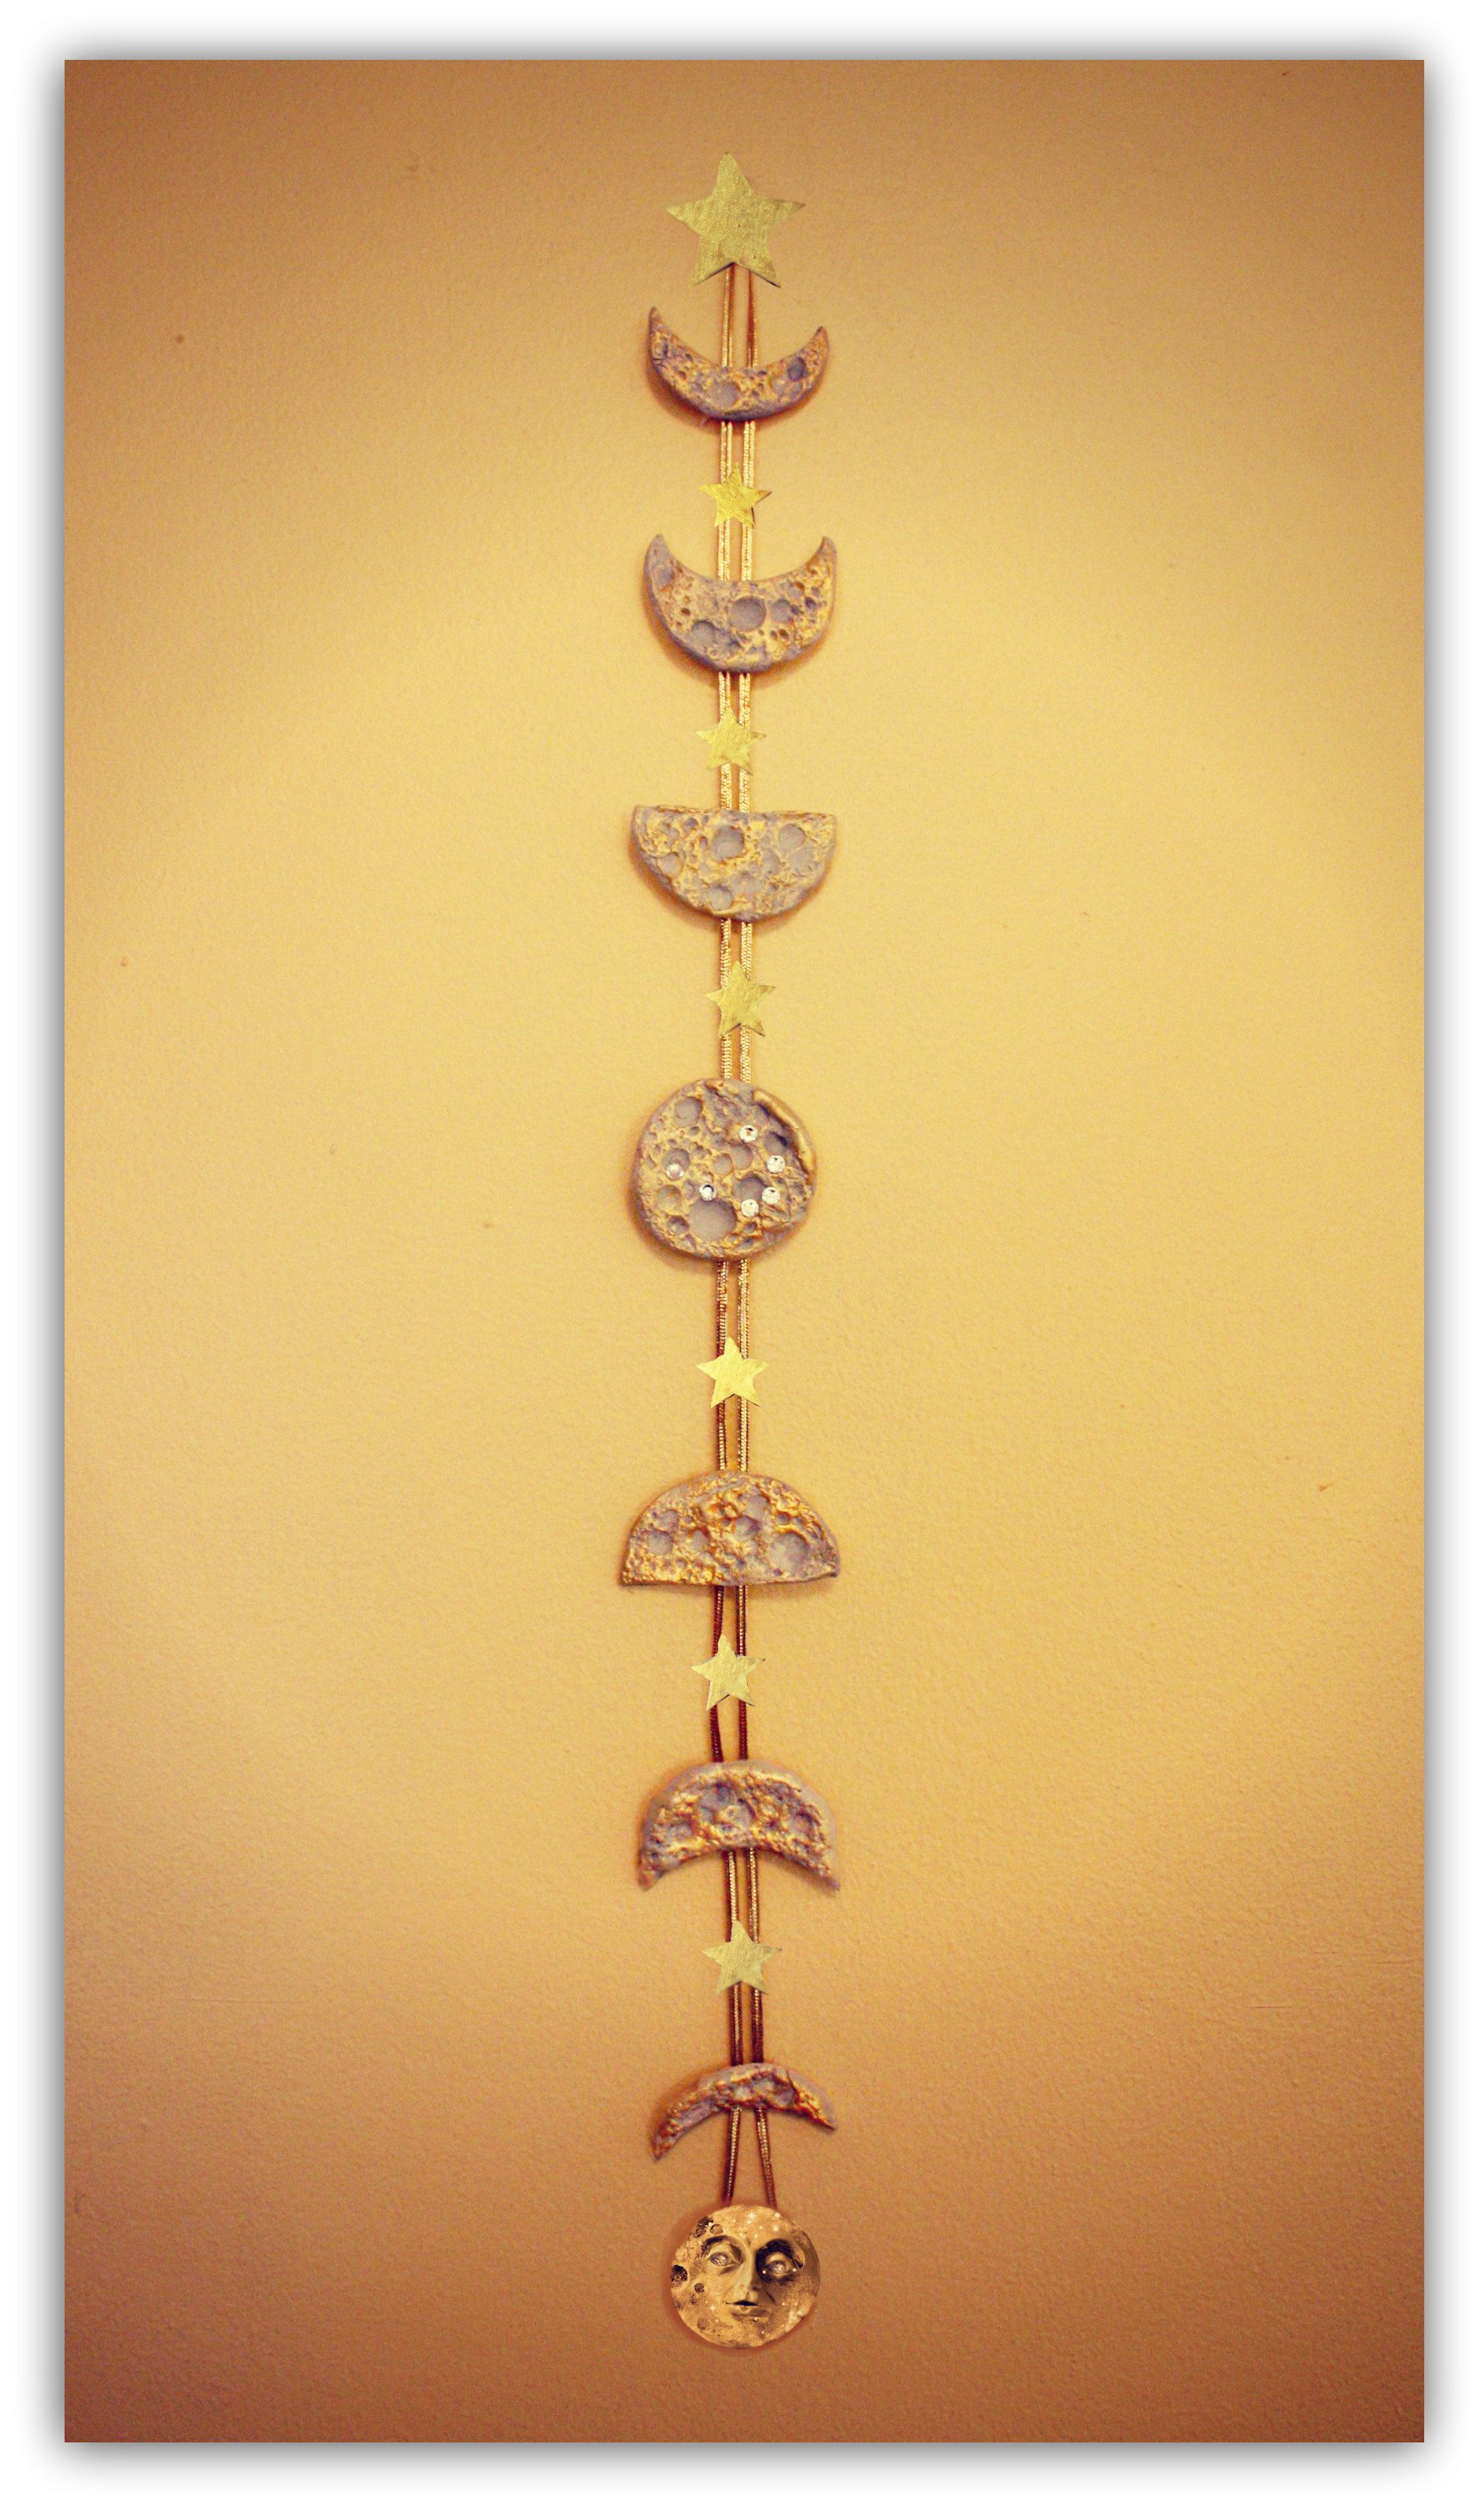 In this AstroCrafts project we will create a Lunar Wall Hanging ...